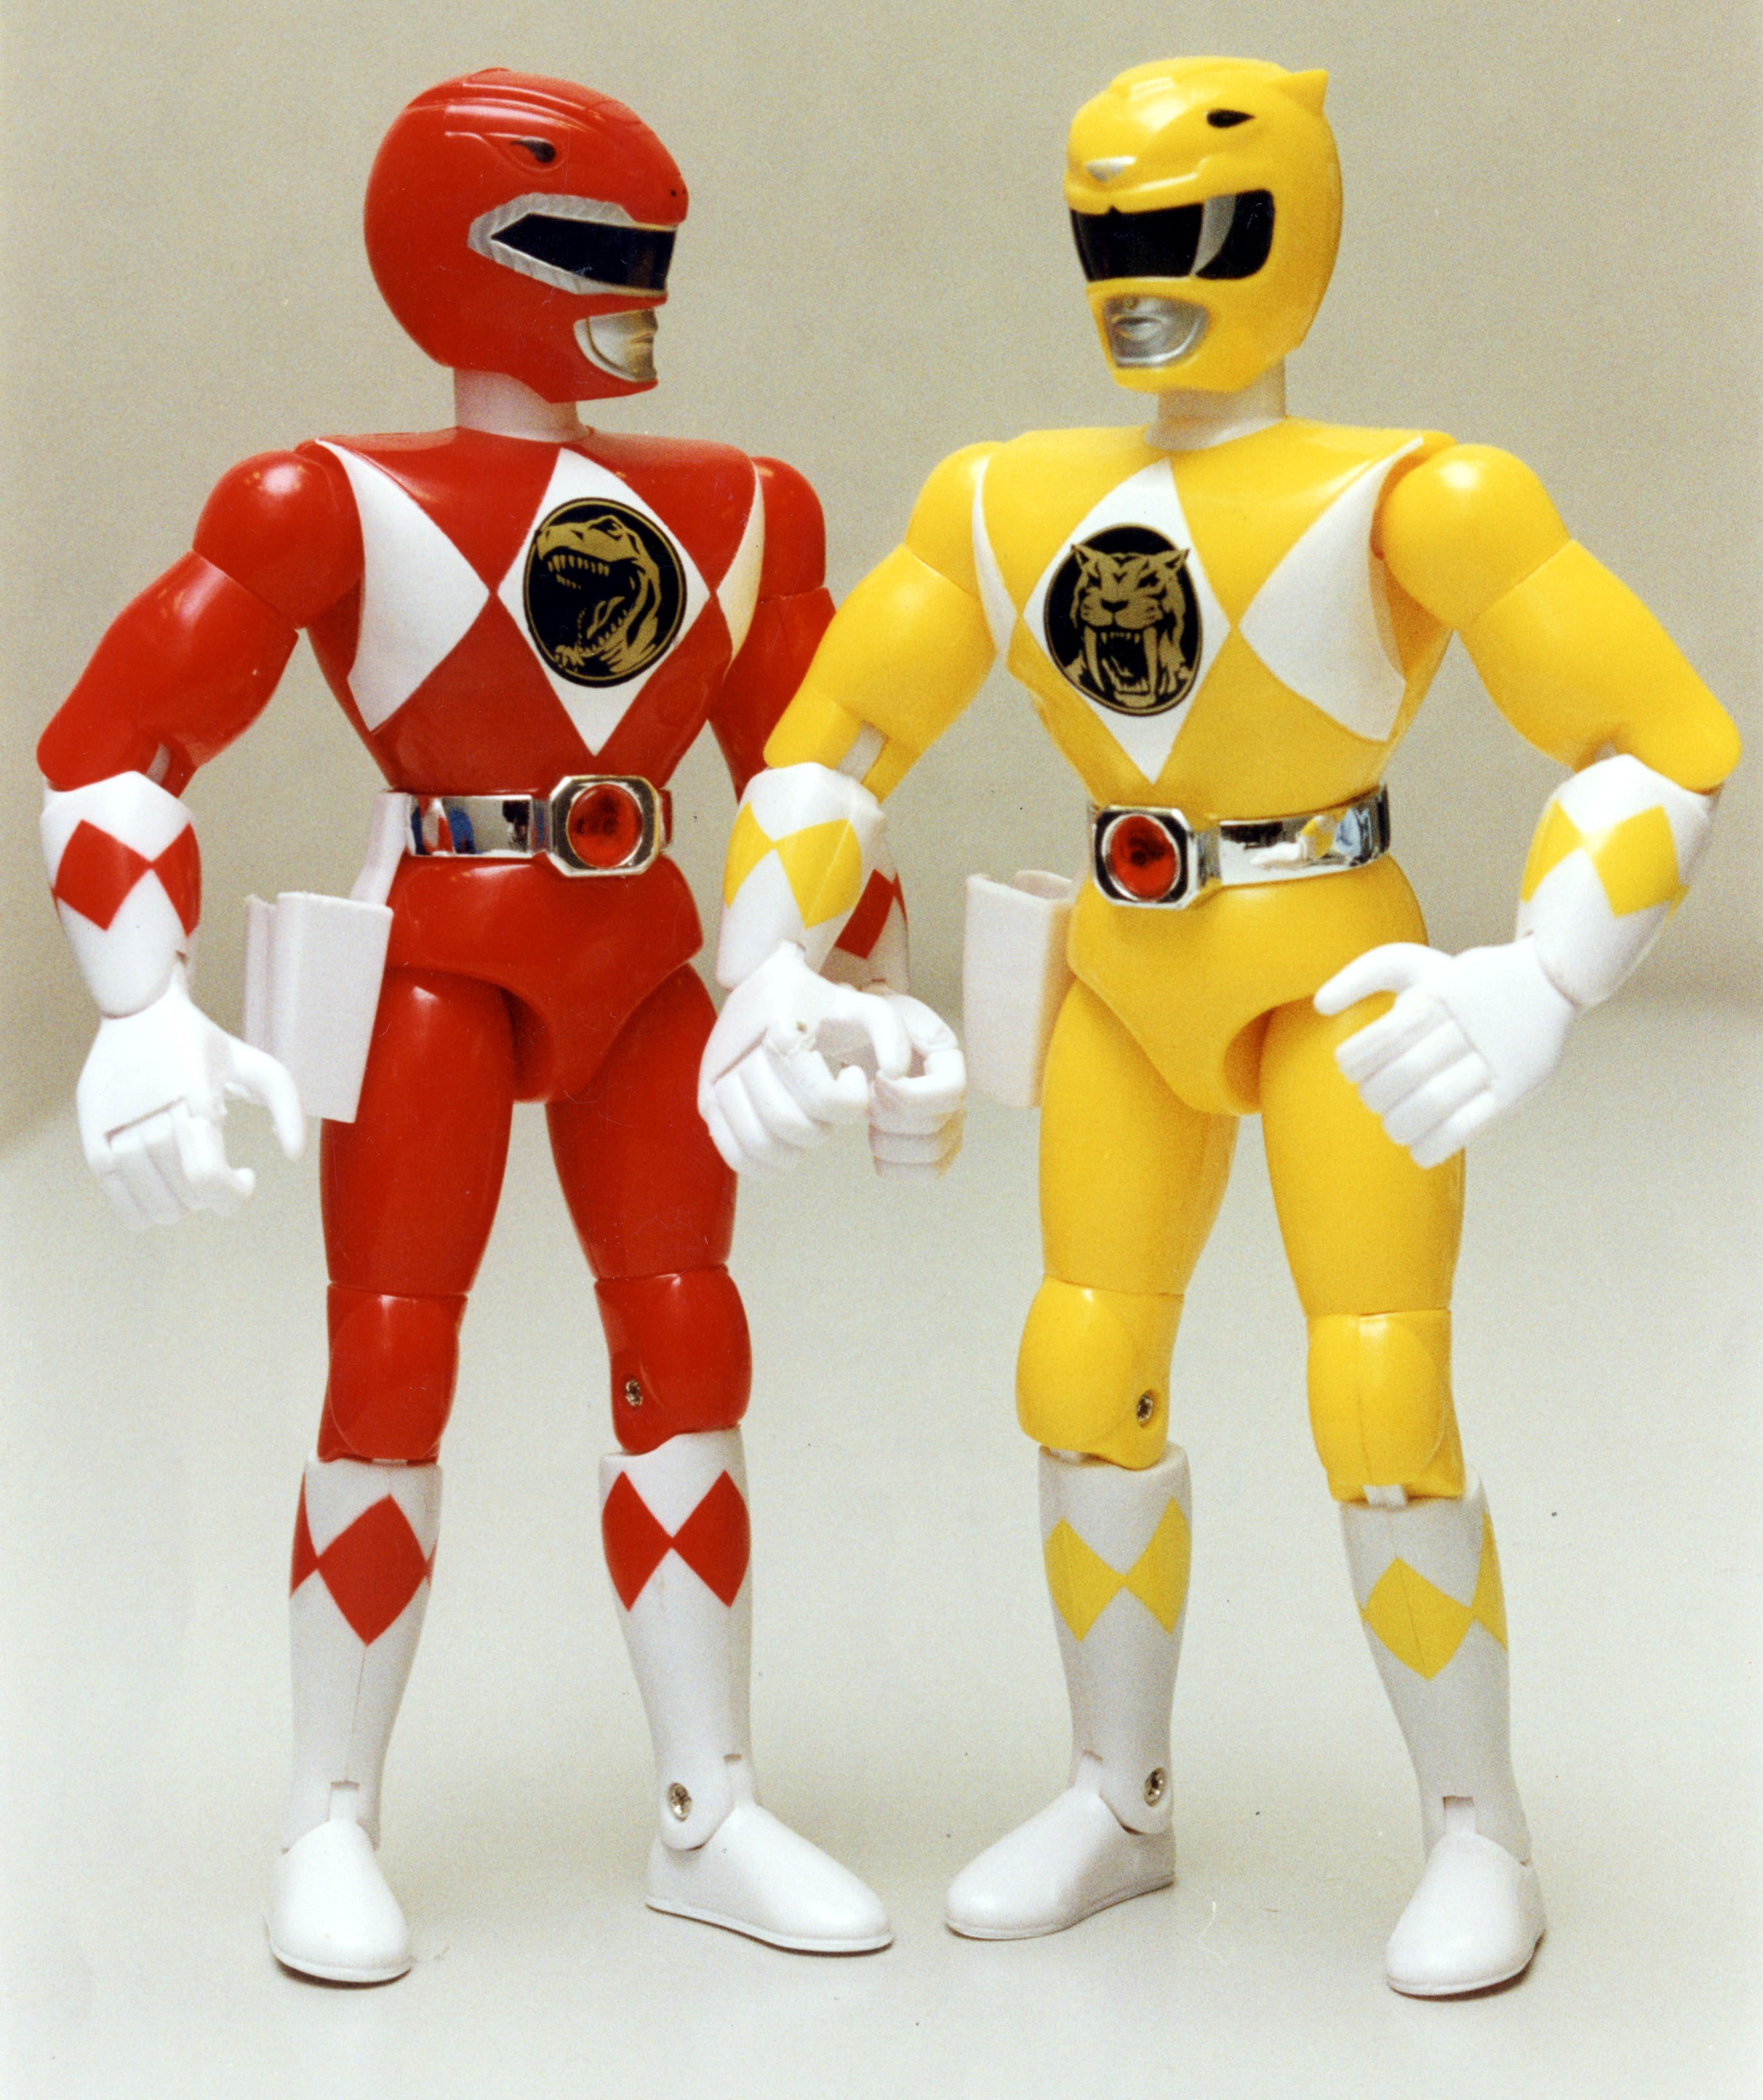 Mandatory Credit: Photo by Daily Mail/Shutterstock (3035501a) Power Rangers Toy Action Figures 1994. Power Rangers Toy Action Figures 1994.